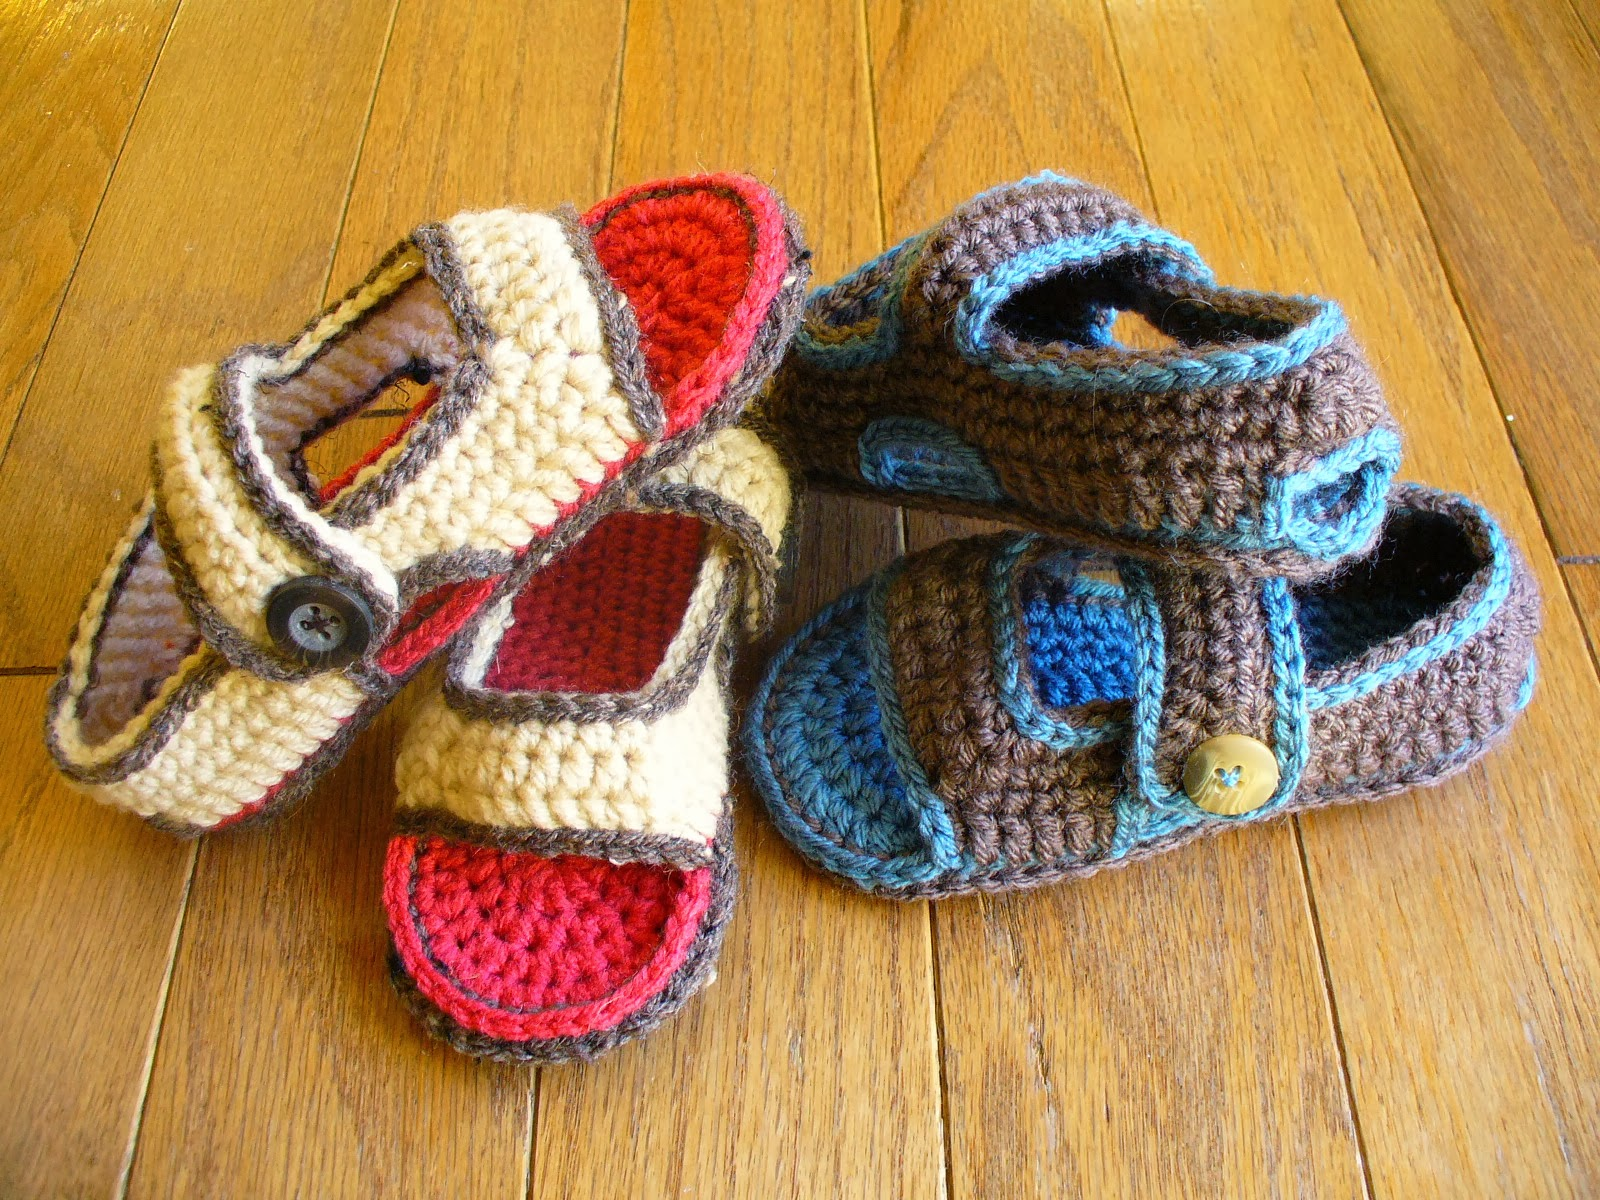 60 Adorable And Free Crochet Baby Sandals Patterns